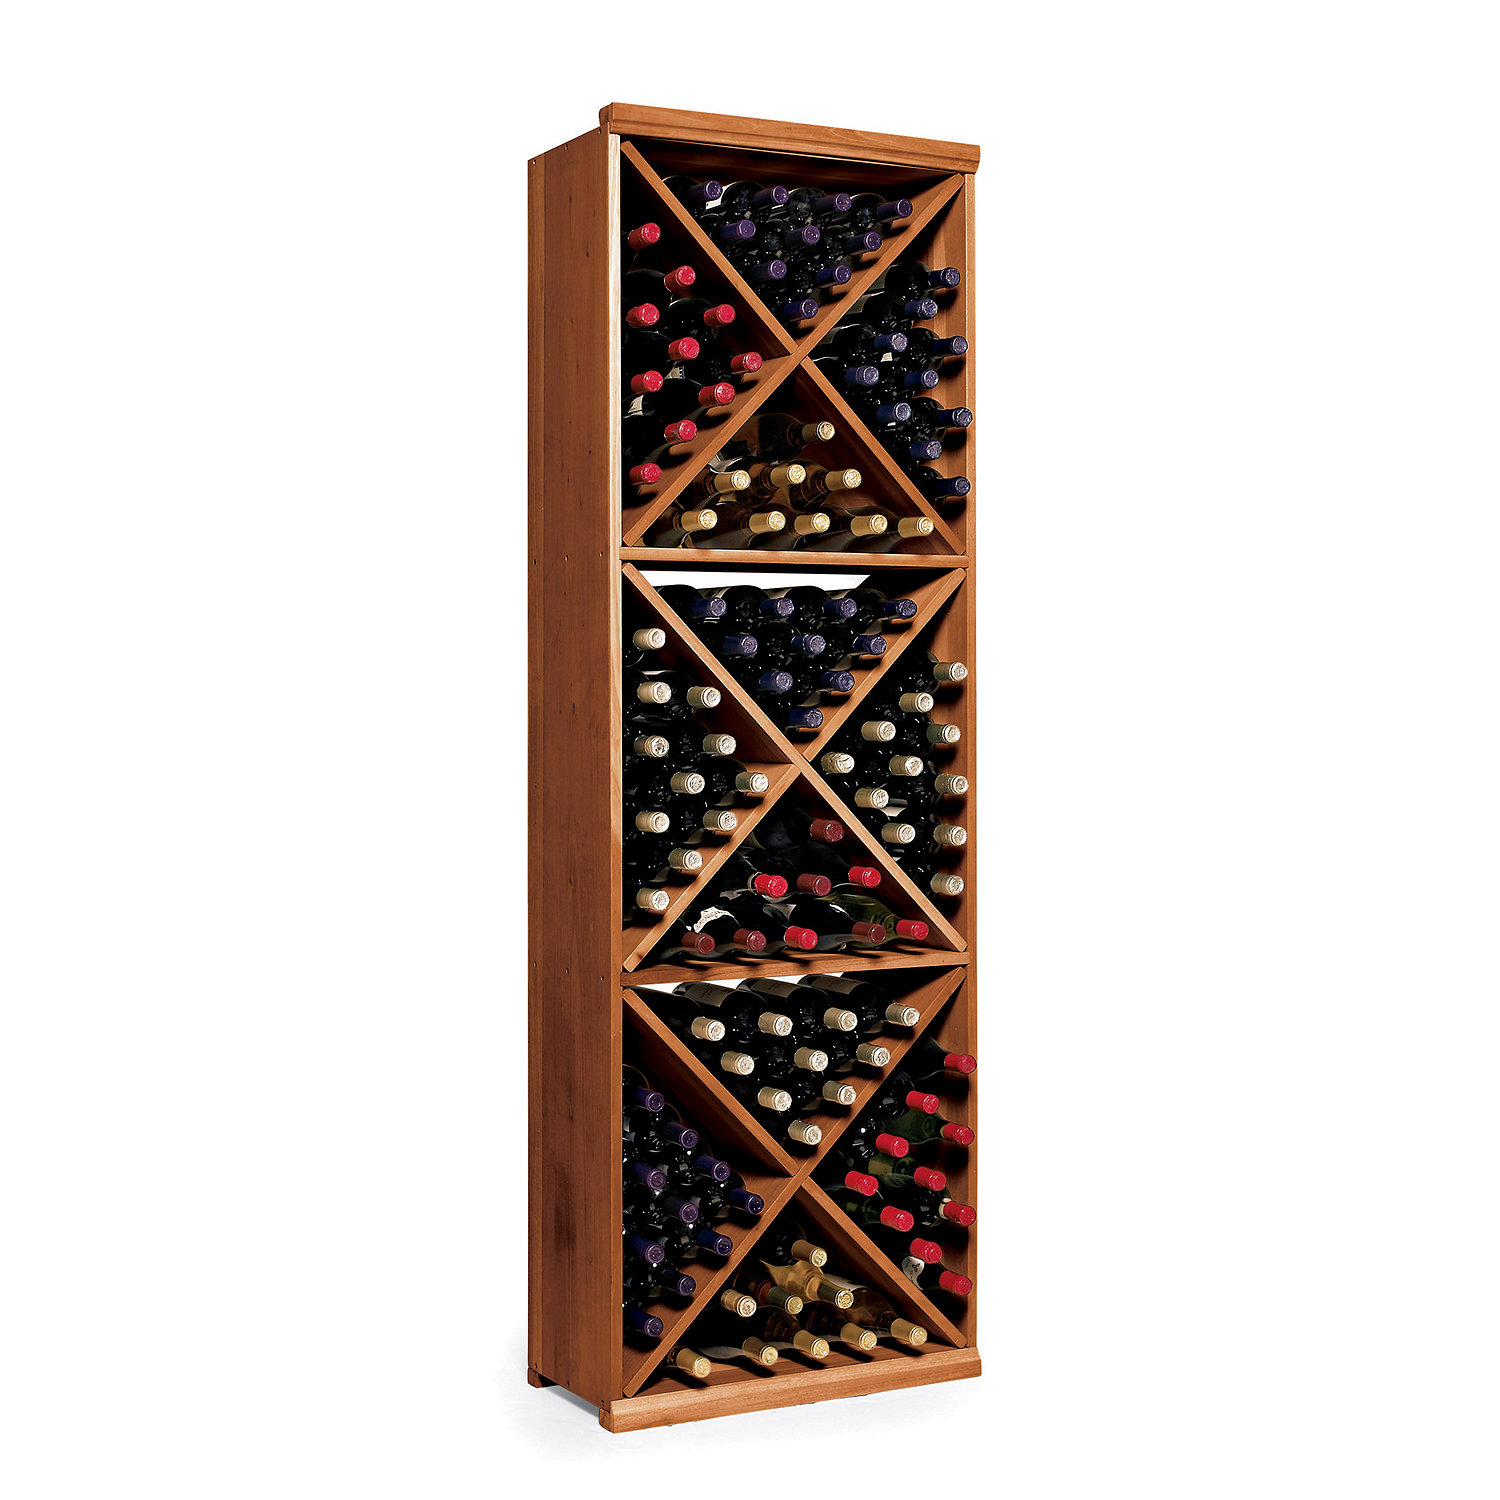 wine bottle storage furniture. Preparing Zoom Wine Bottle Storage Furniture F